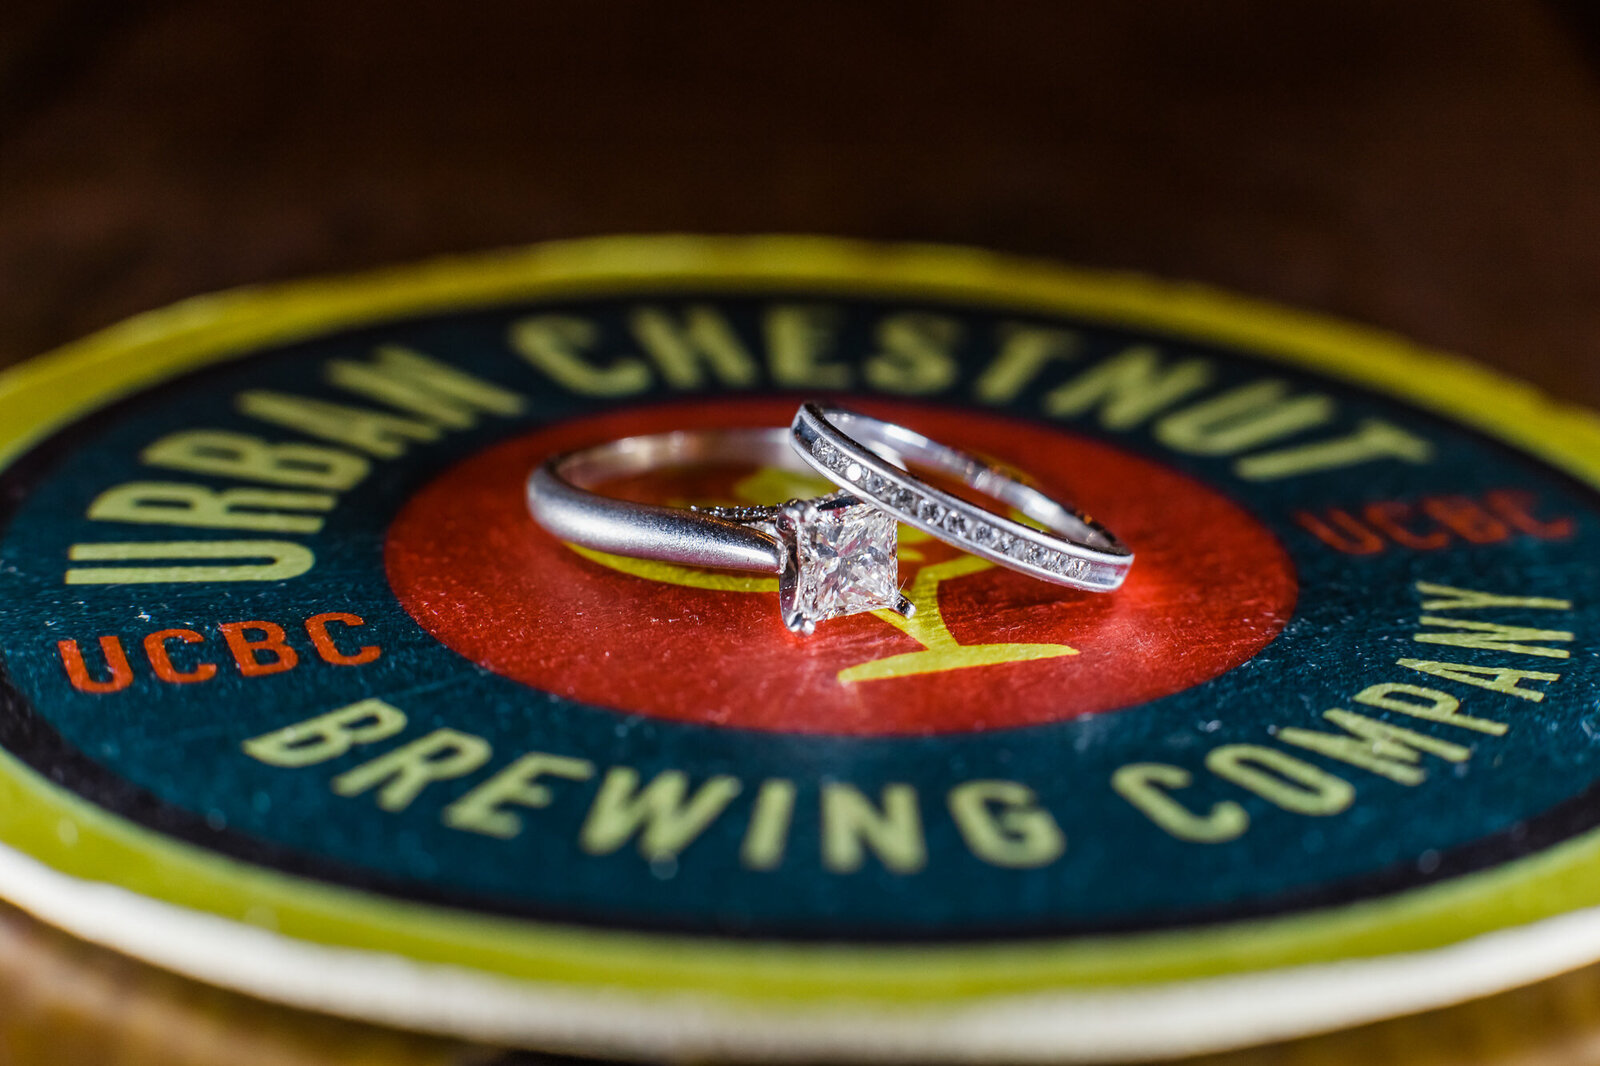 Detail photo of two brides' engagement rings on a local brewery coaster